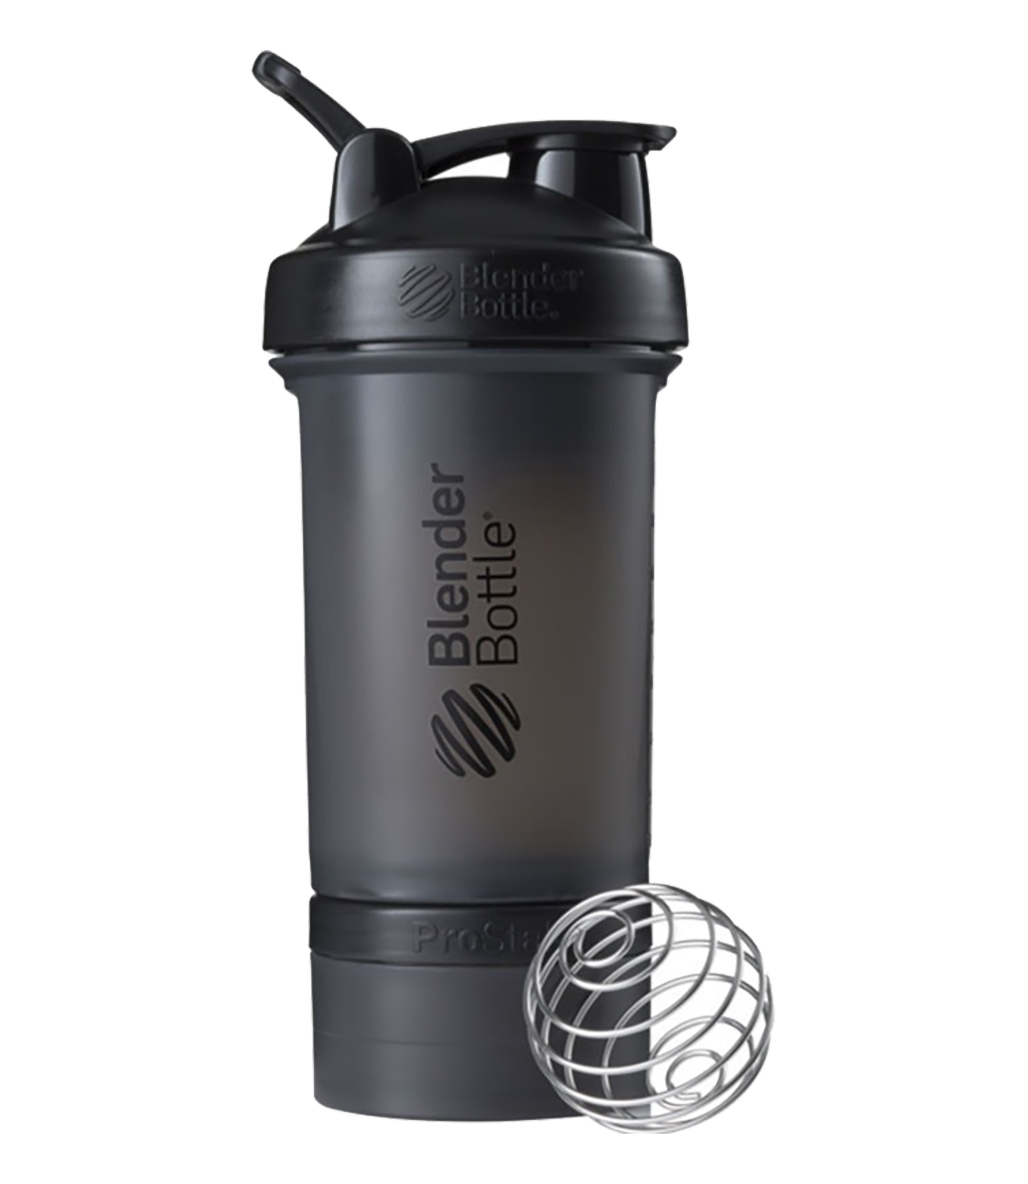 Blender Bottle Prostak Siyah 450 ml